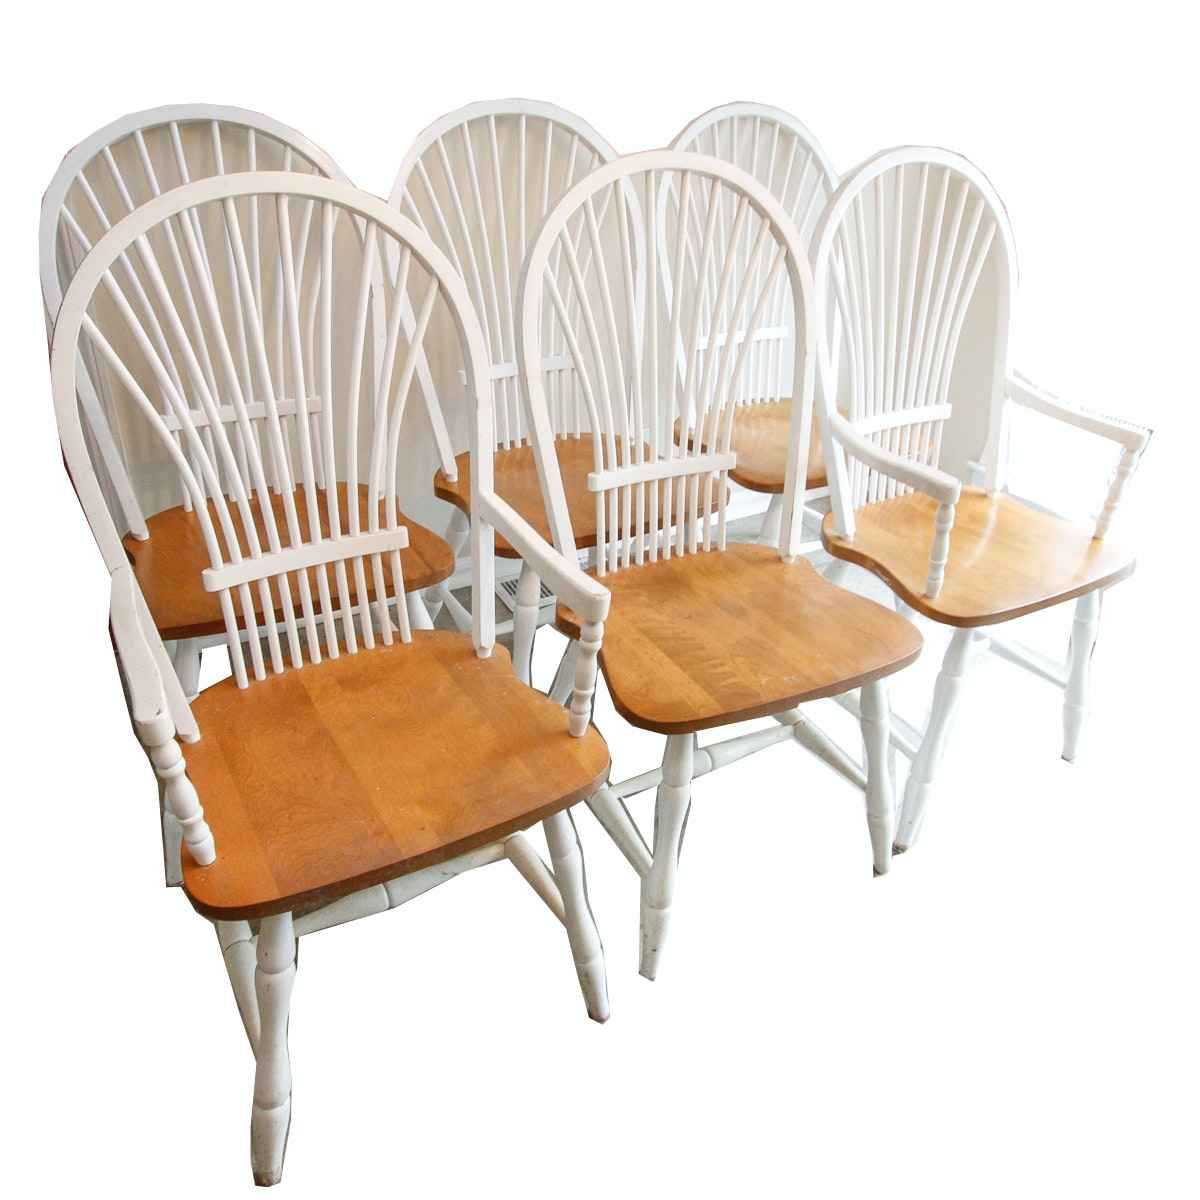 Vintage Windsor Style Dining Chairs